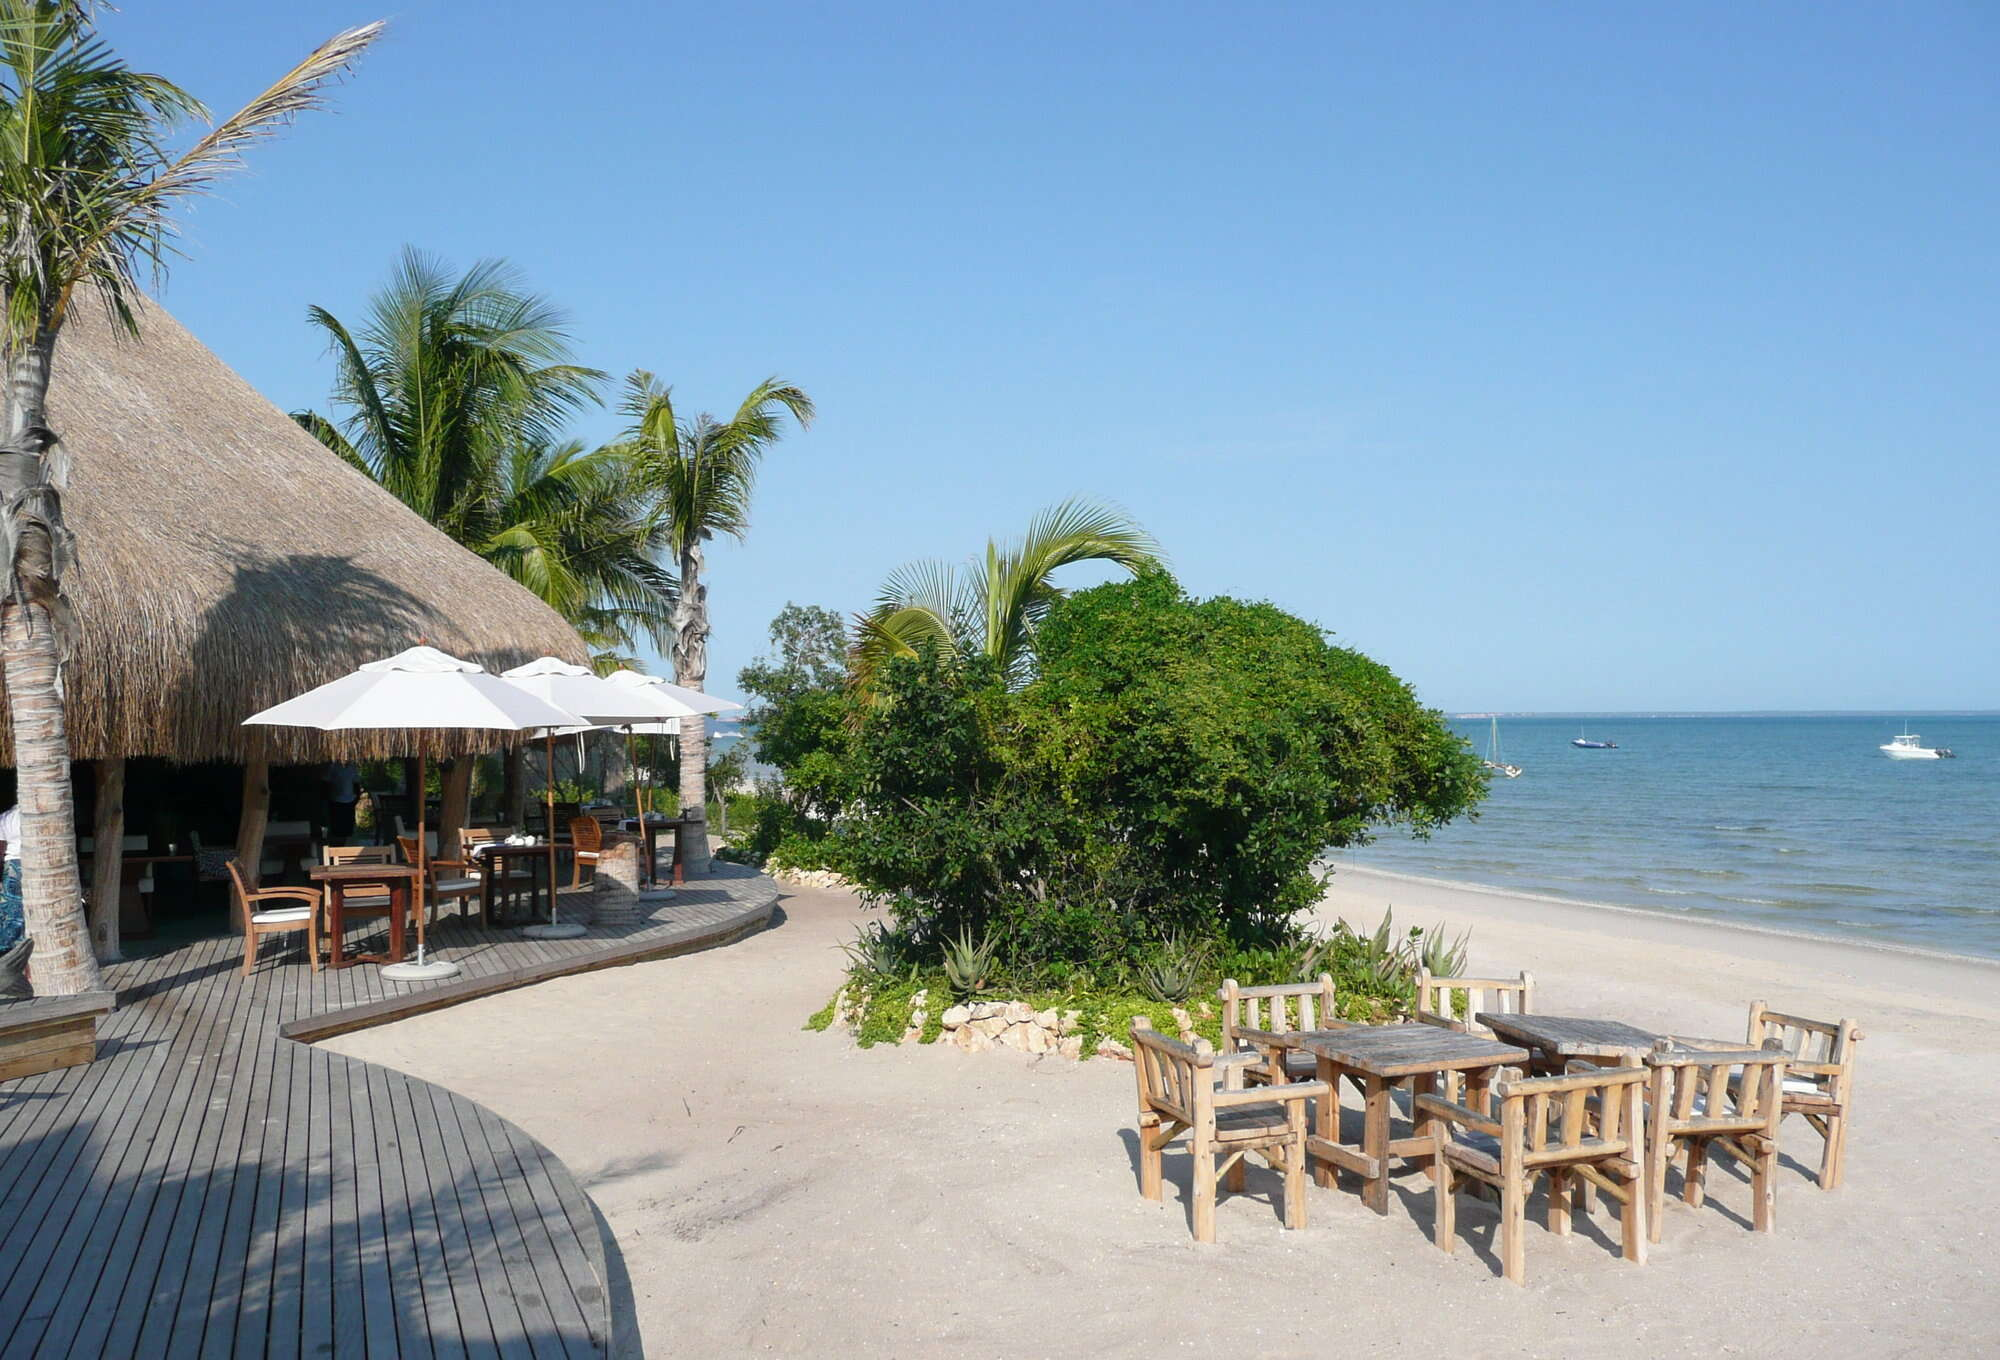 Beach holiday to Azura Mozambique, on Benguerra Island, in the Bazaruto Archipelago of Mozambique